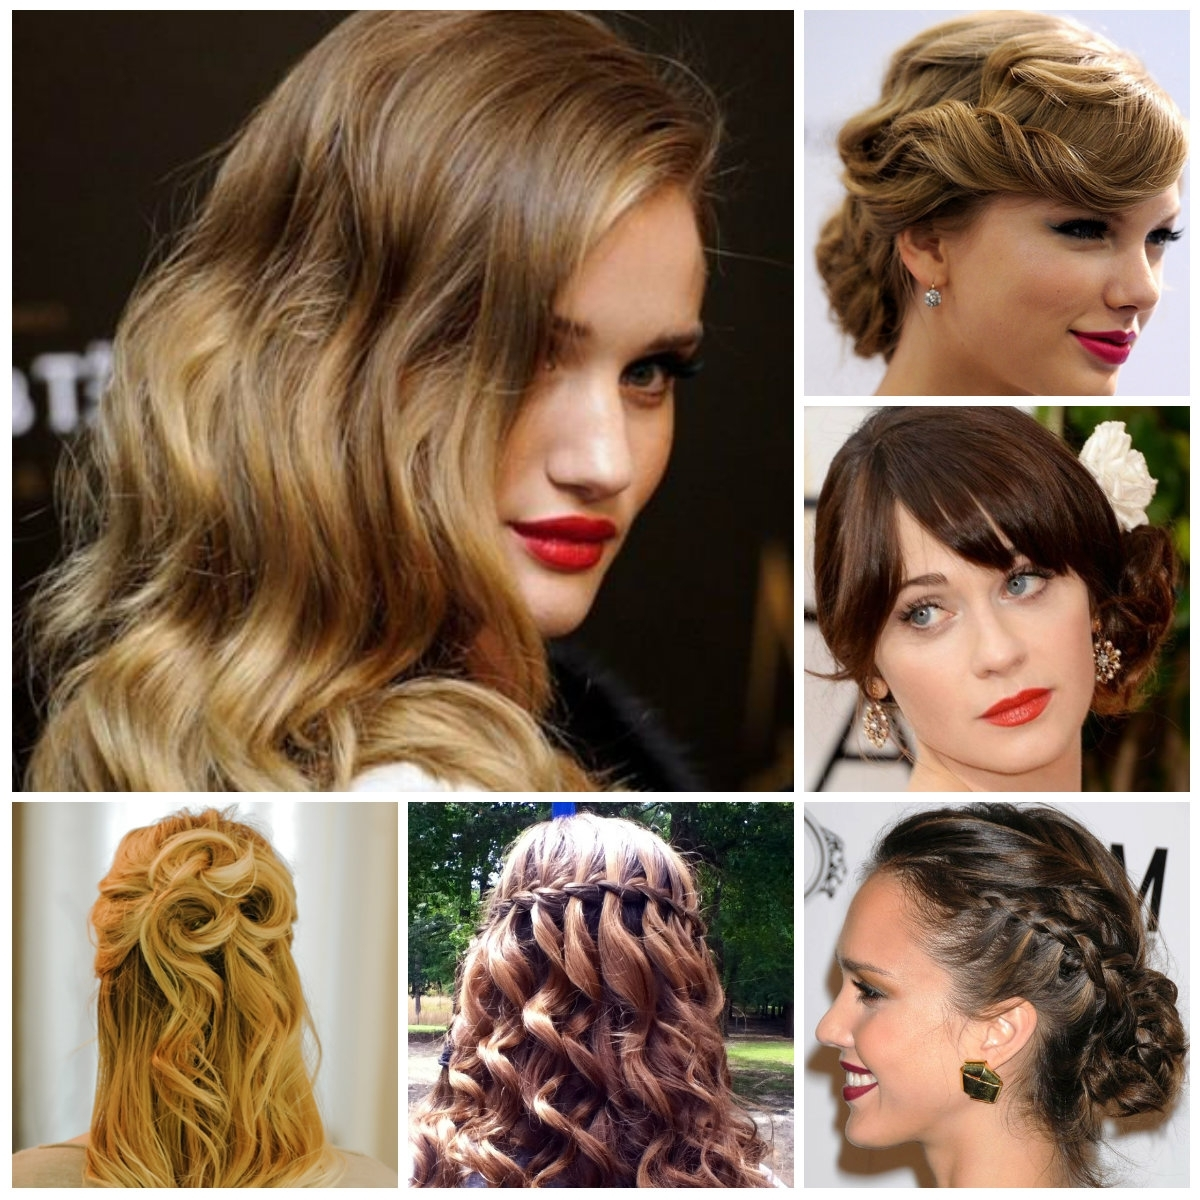 Prom Hairstyles For Teenagers | New Haircuts To Try For 2018 Pertaining To Teenage Updos For Long Hair (View 11 of 15)